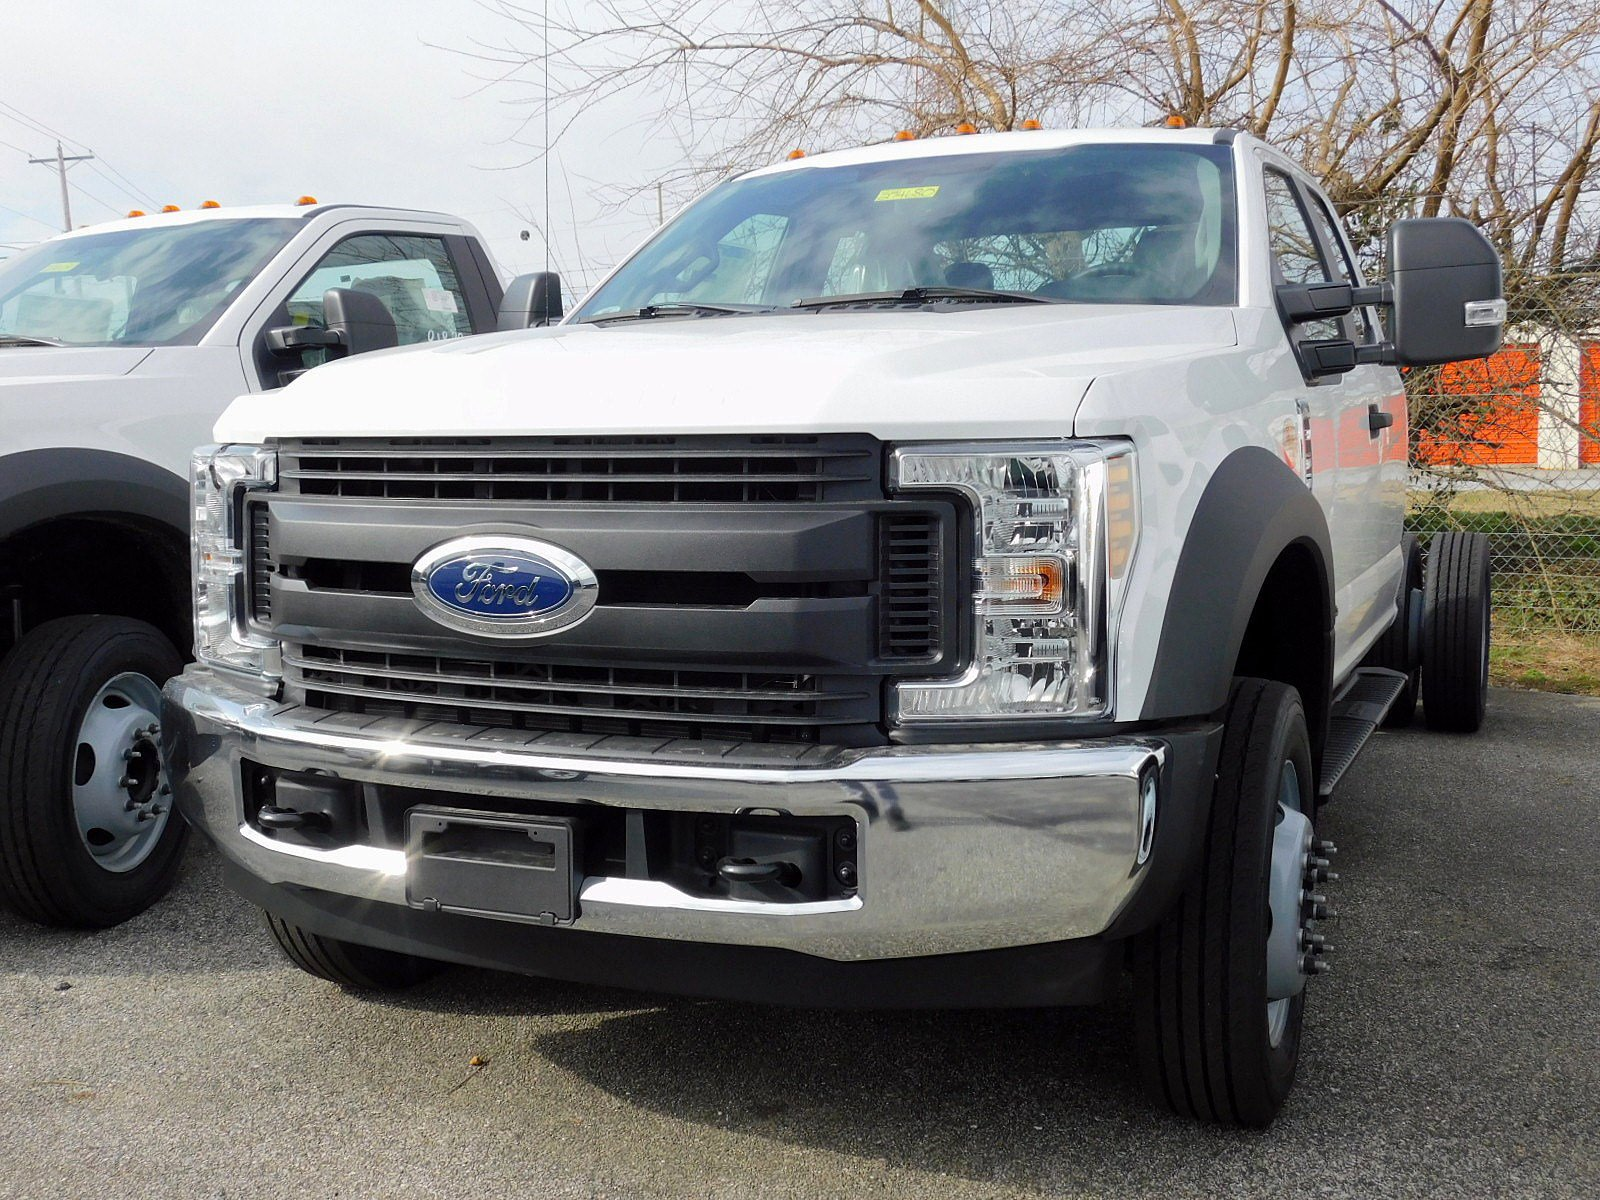 NEW 2019 FORD SUPER DUTY F-550 DRW TRUCK, CAB CHASSIS TRUCK #7010-2